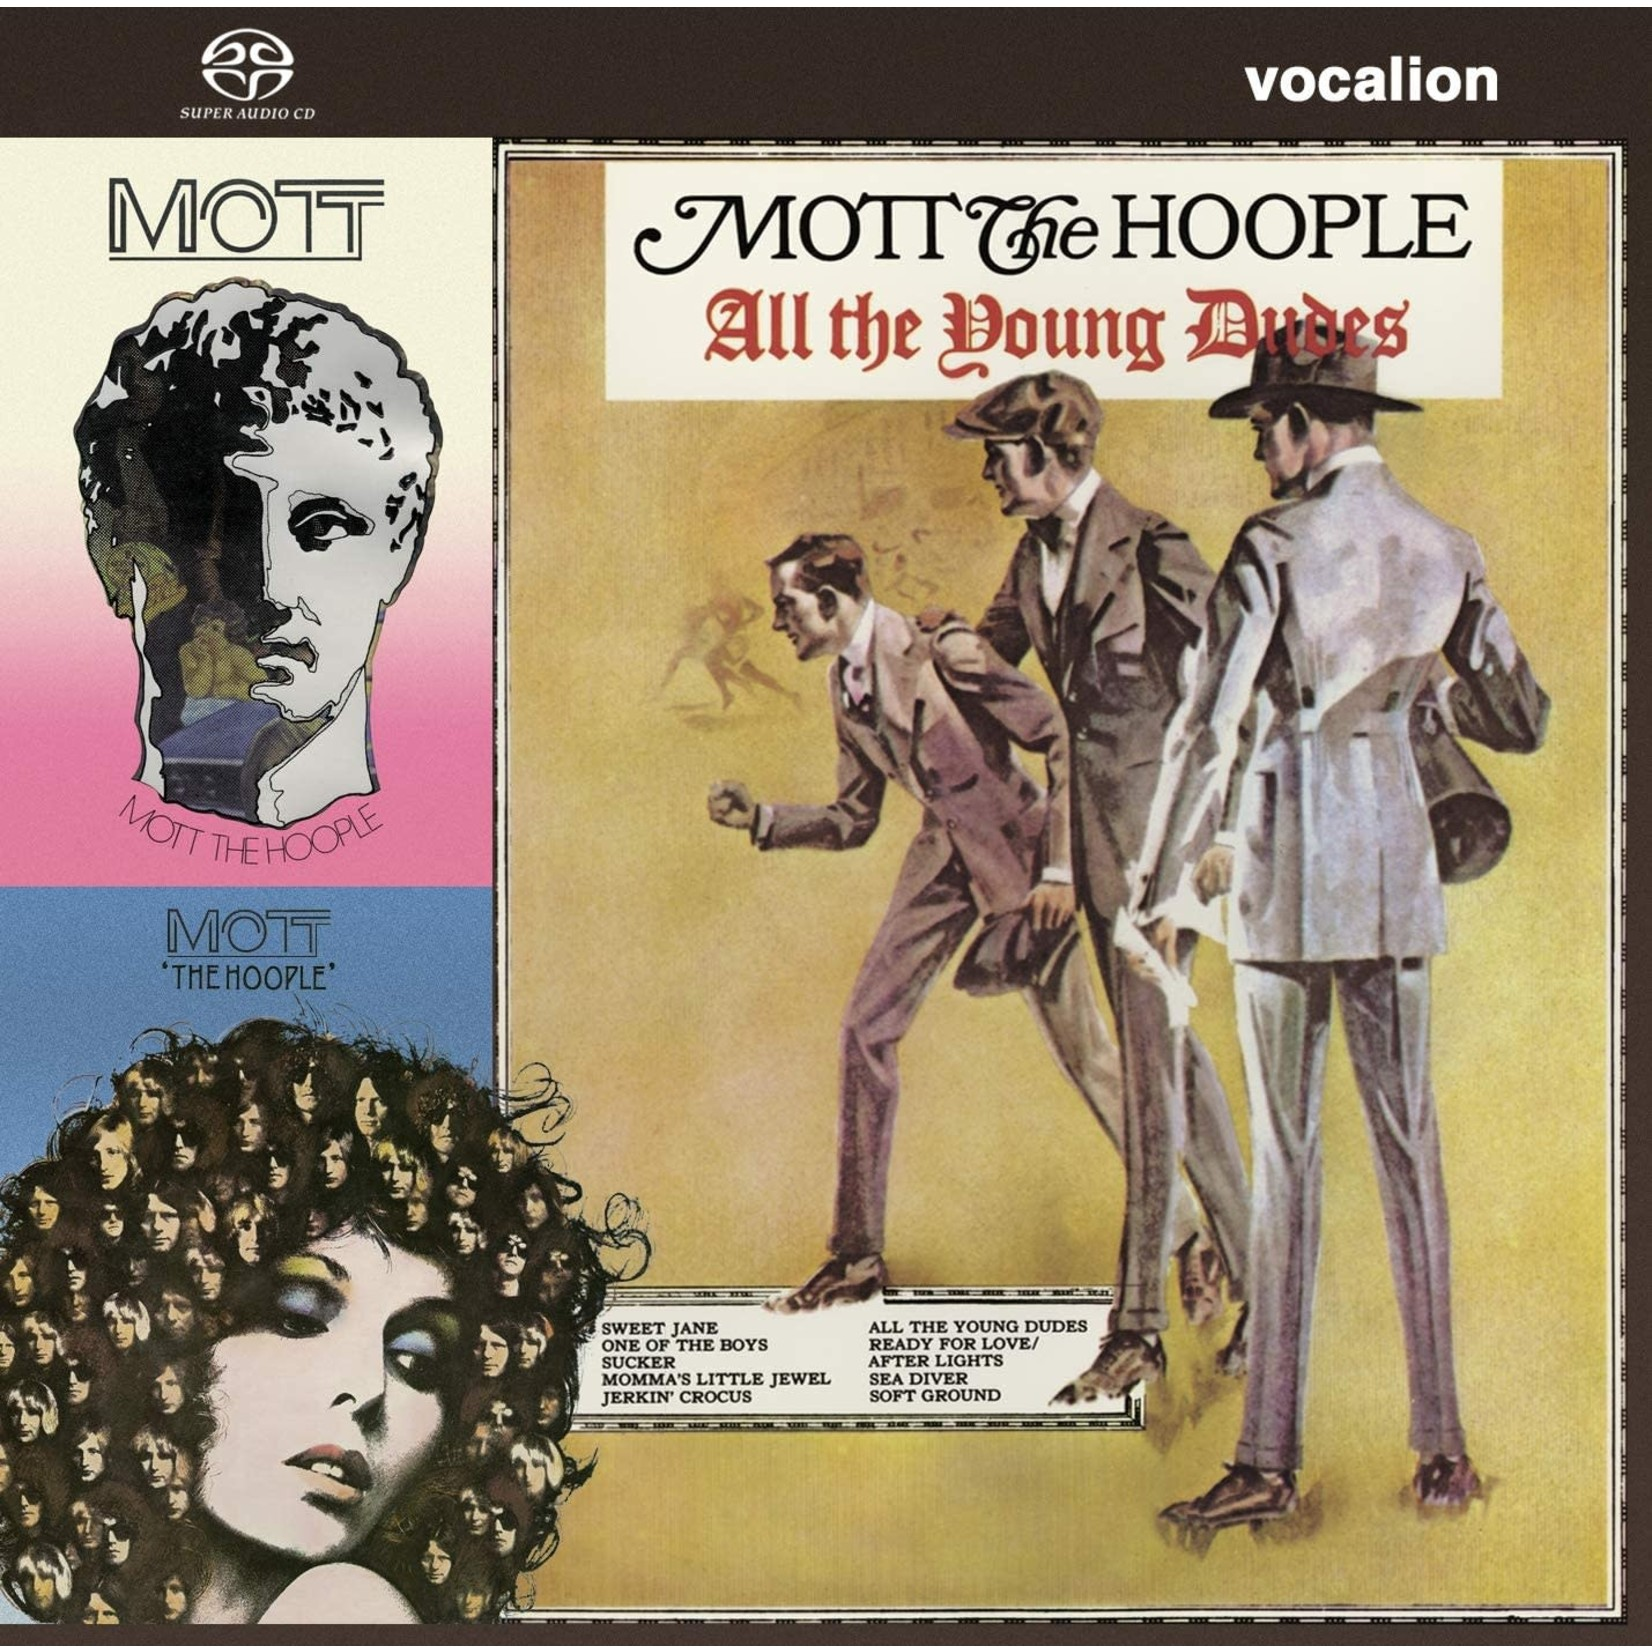 Compact Disc Mott the Hoople – The Hoople, All the Young Dudes & Mott [SACD Hybrid Multi-Channel/Stereo]